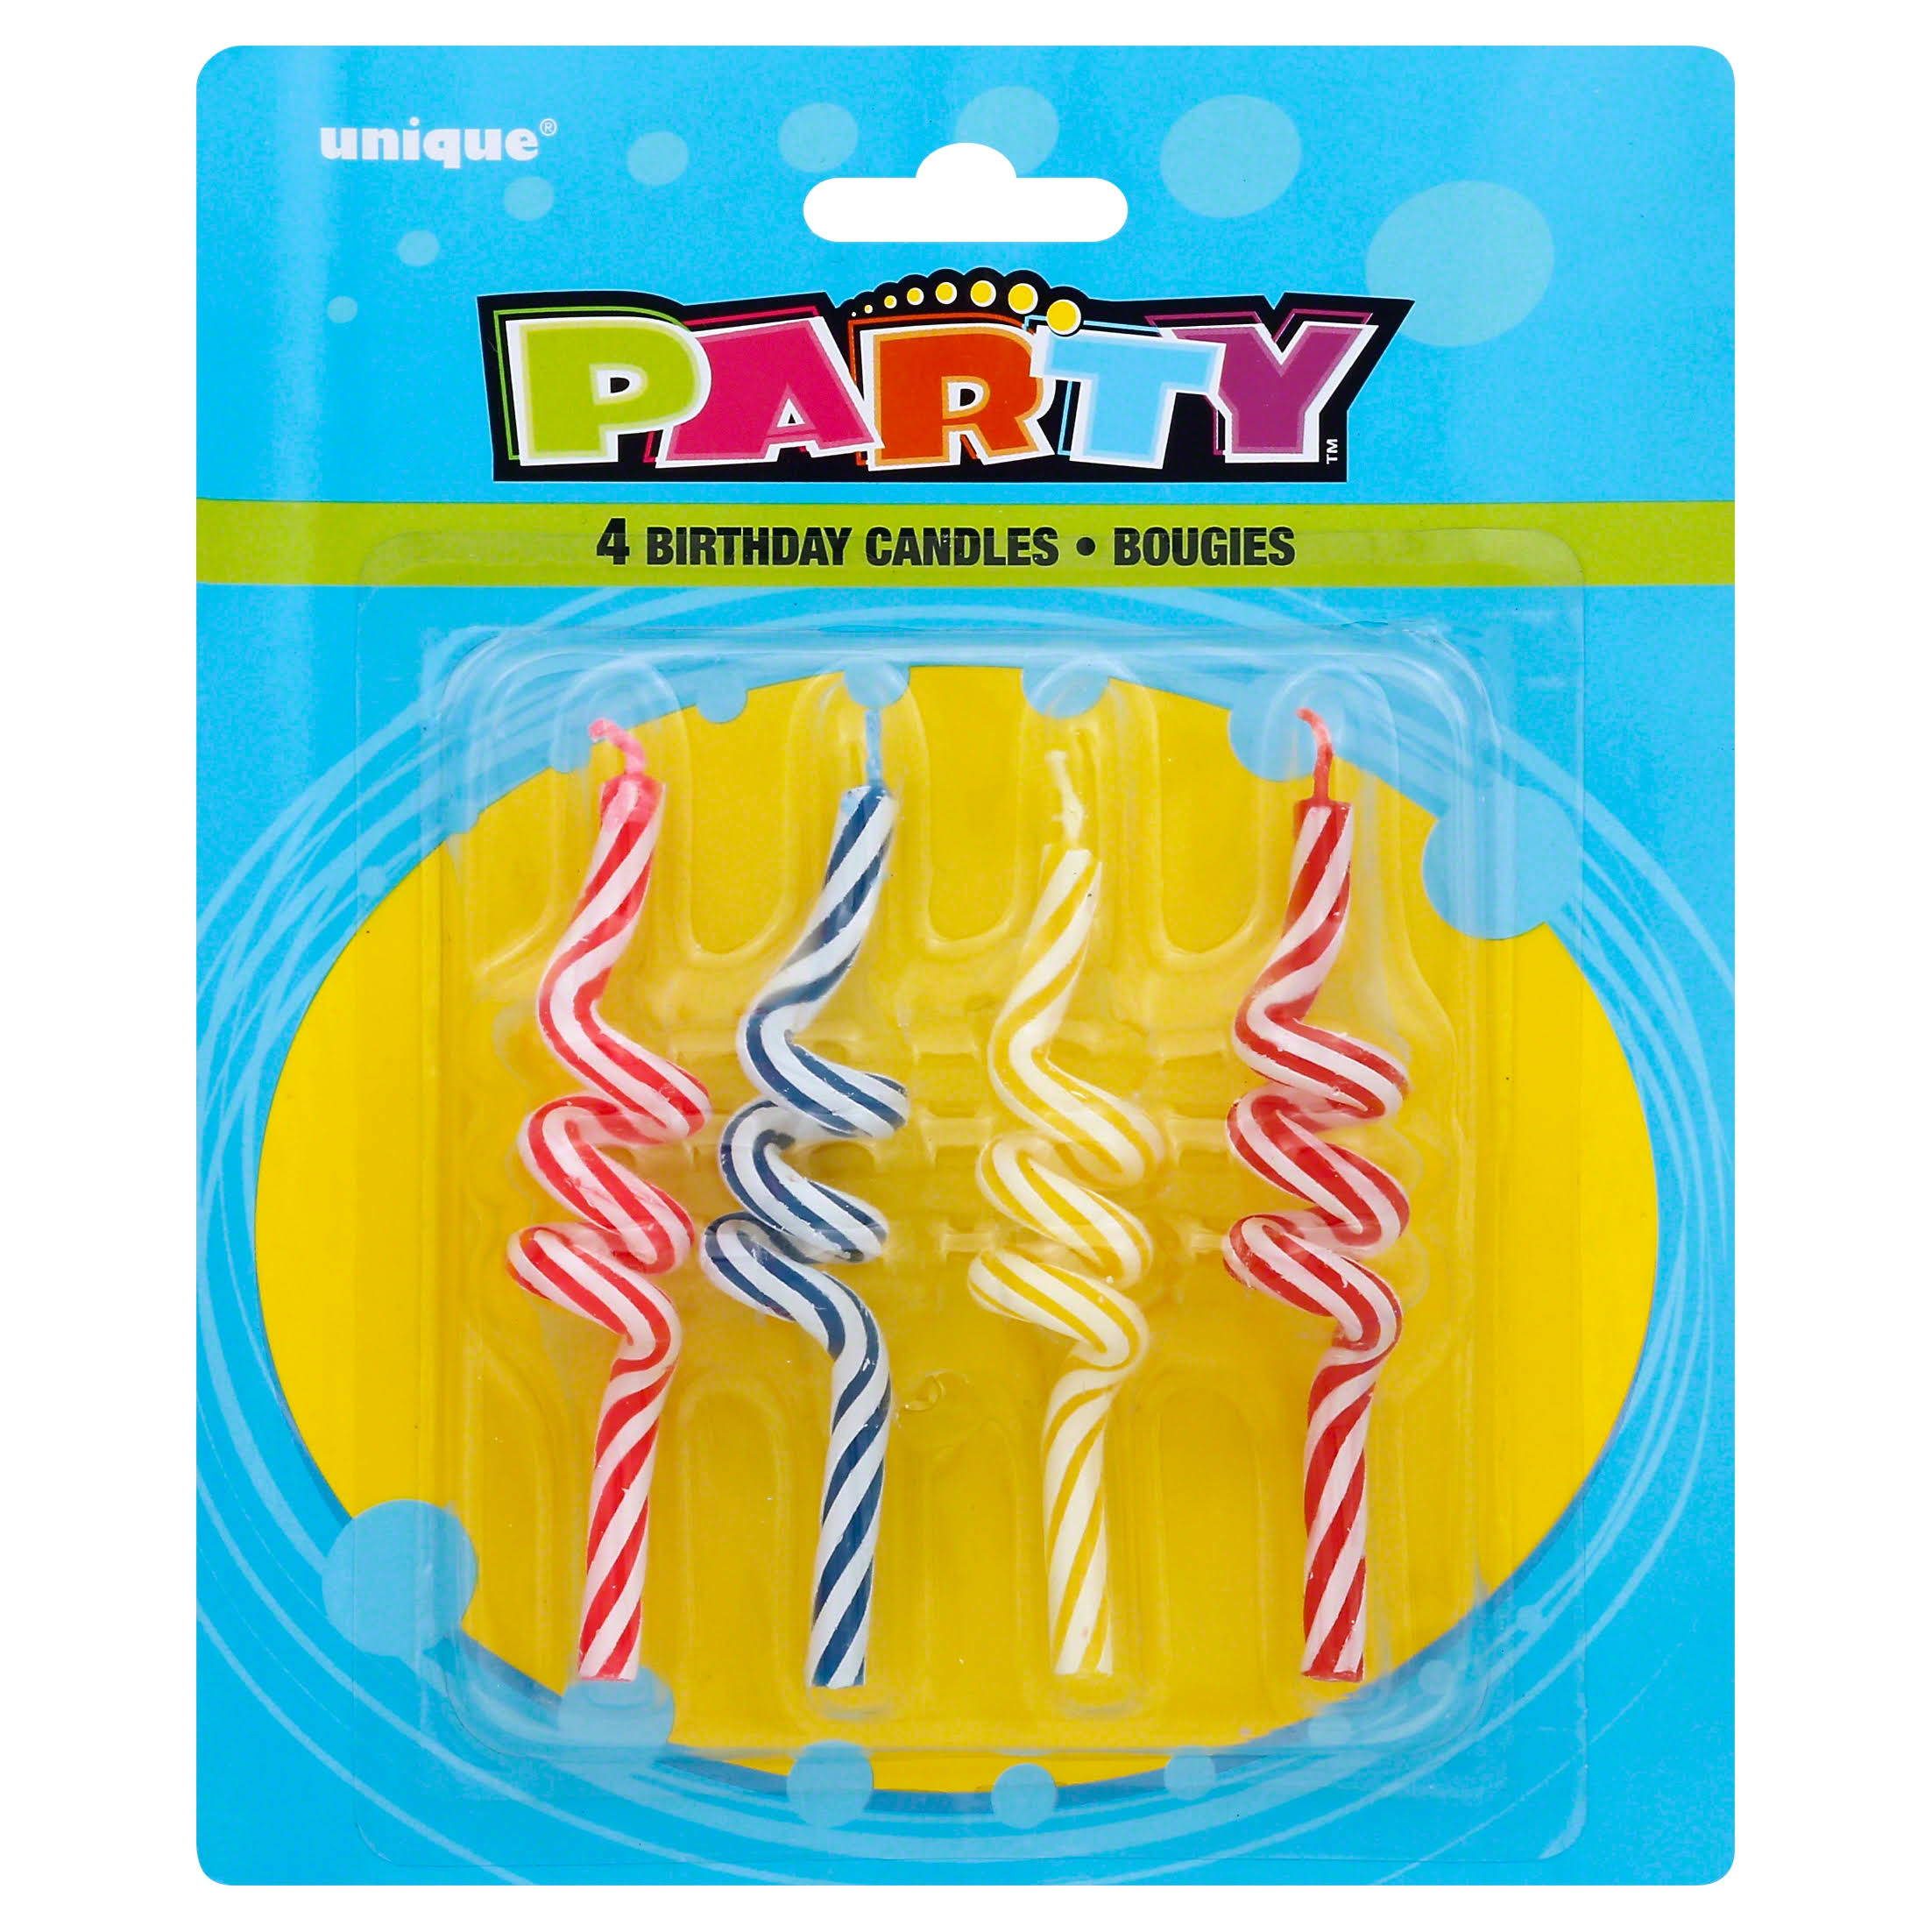 Unique Striped Coil Birthday Candles - 4ct